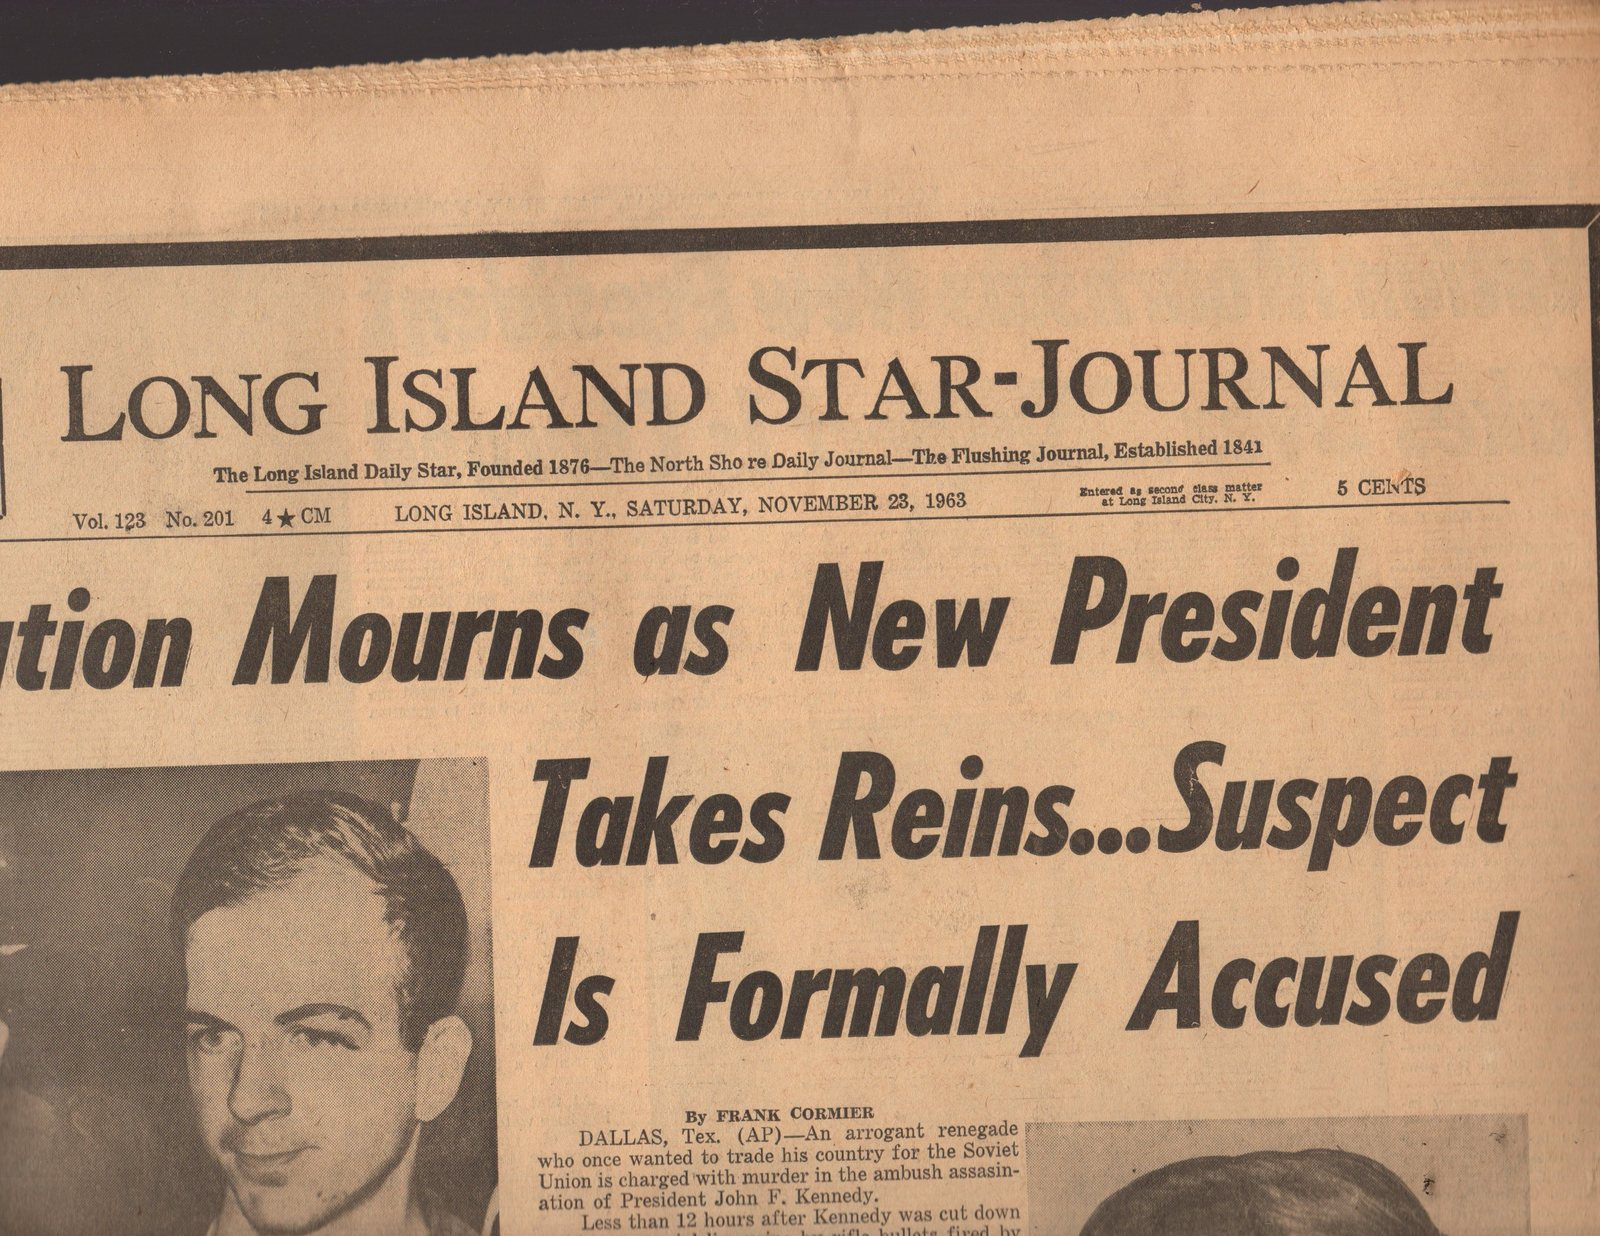 Primary image for Long Island Star  Journal  Newspaper 11/23/63  Saturday, November 23, 1963